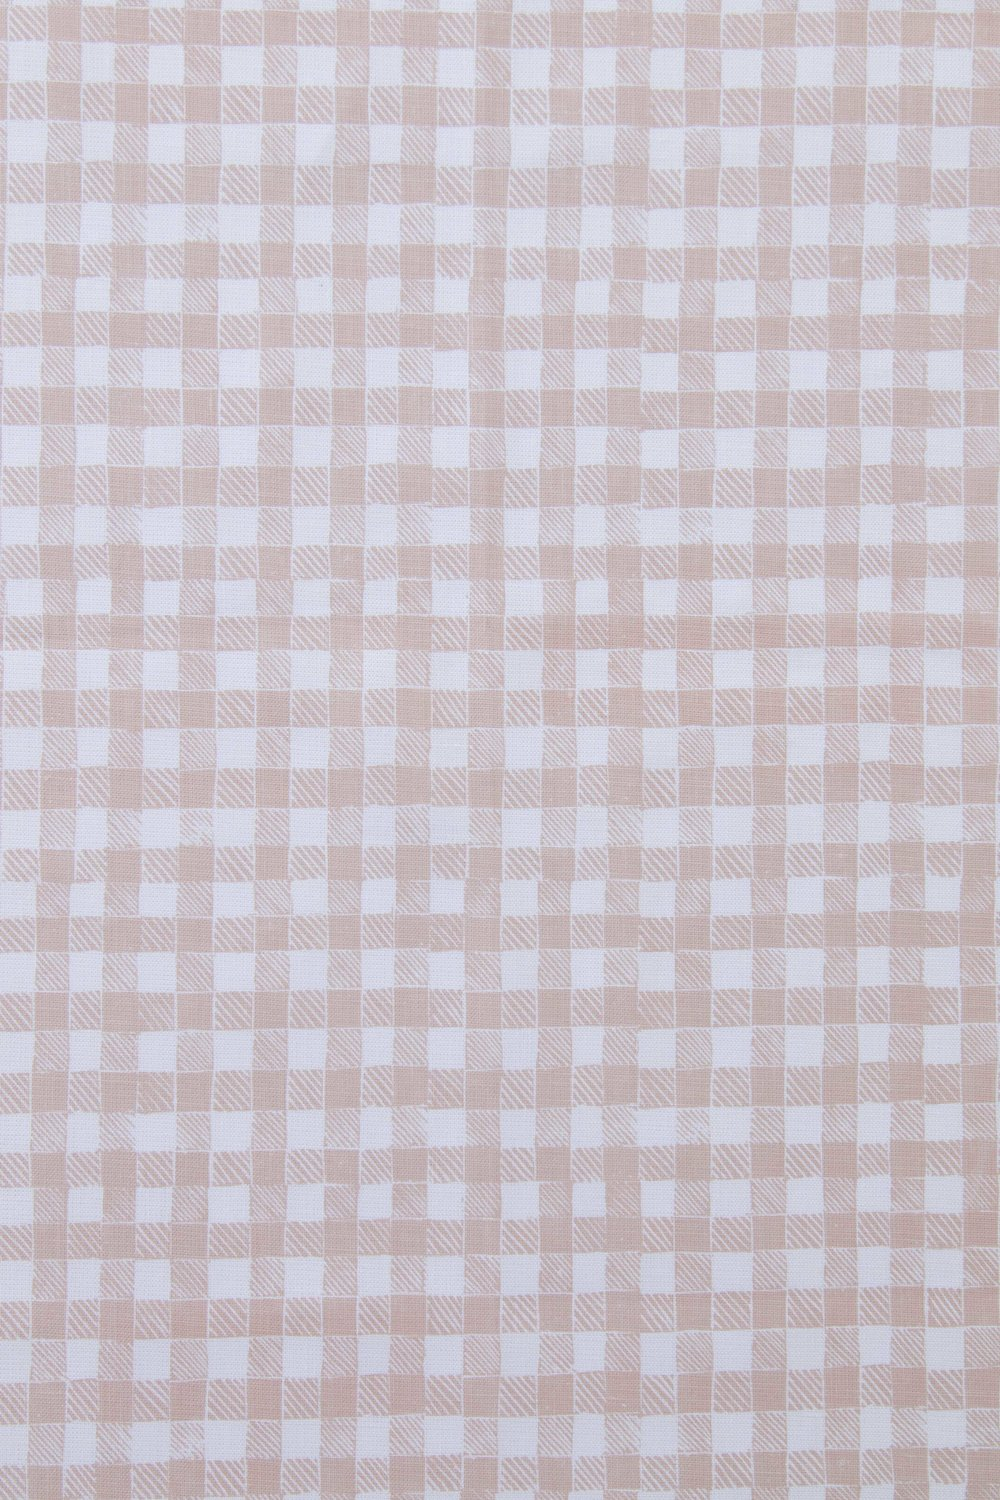 Block Print Gingham in Beige, KF250-04